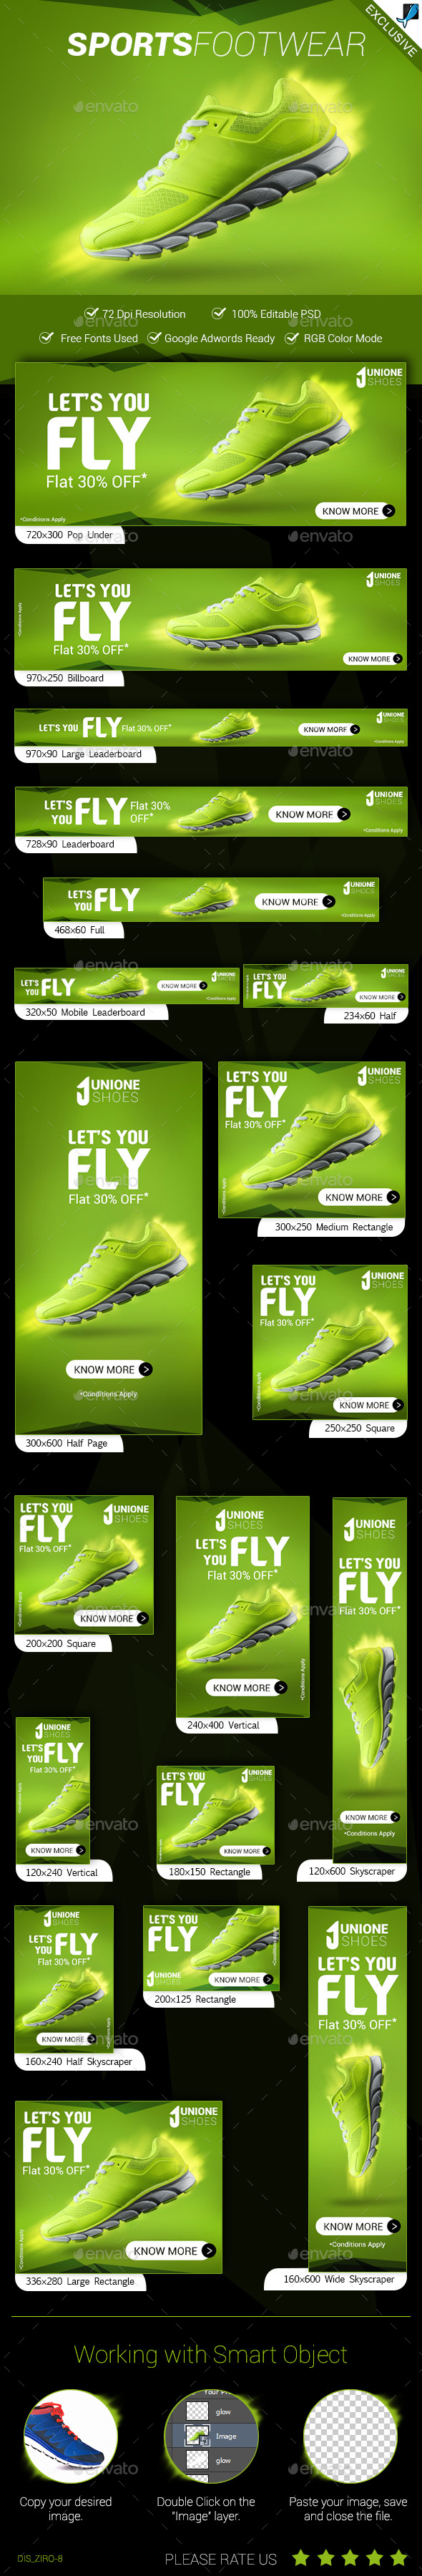 Sports Footwear Ad Banners - Banners & Ads Web Elements